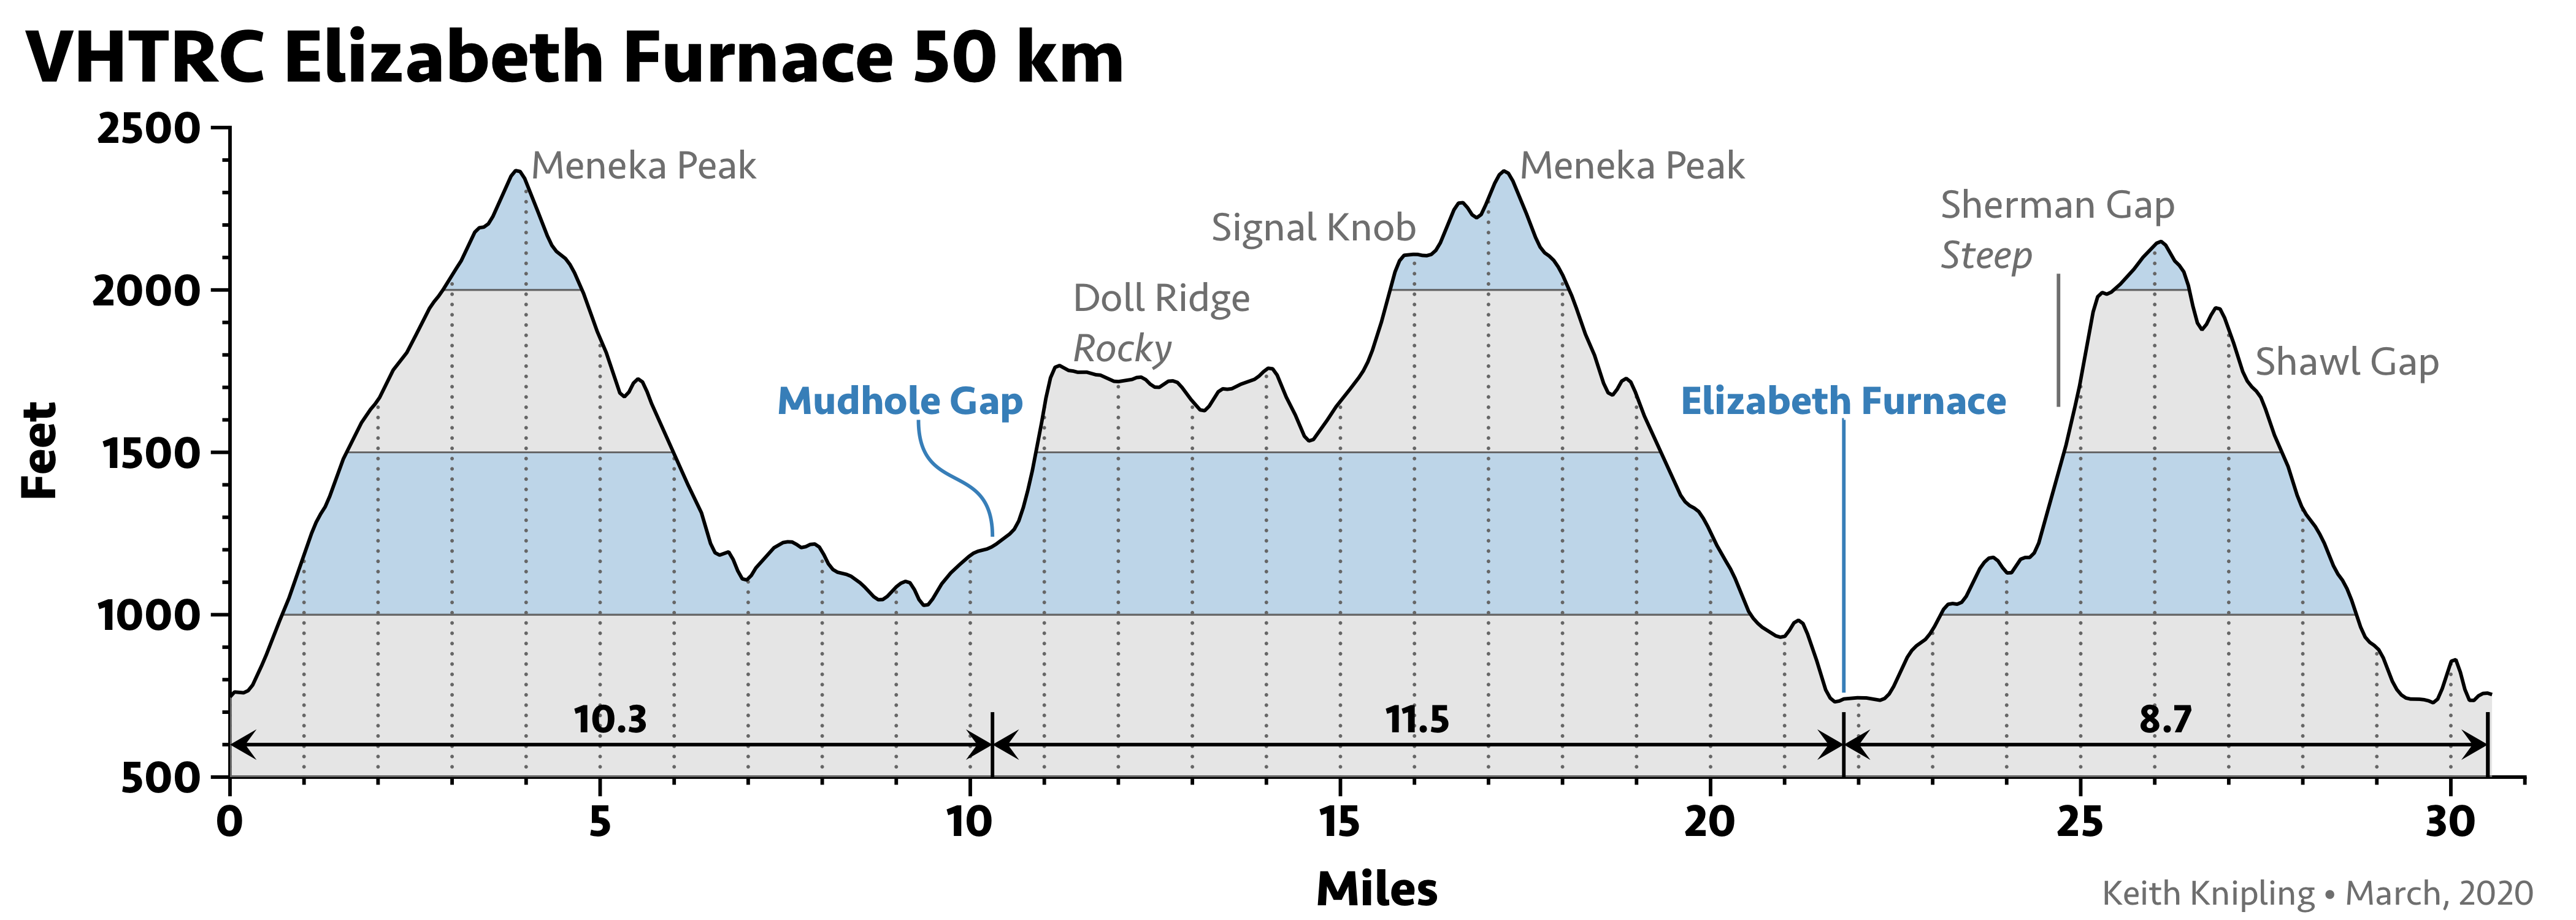 Elizabeth Furnace 50 km elevation profile